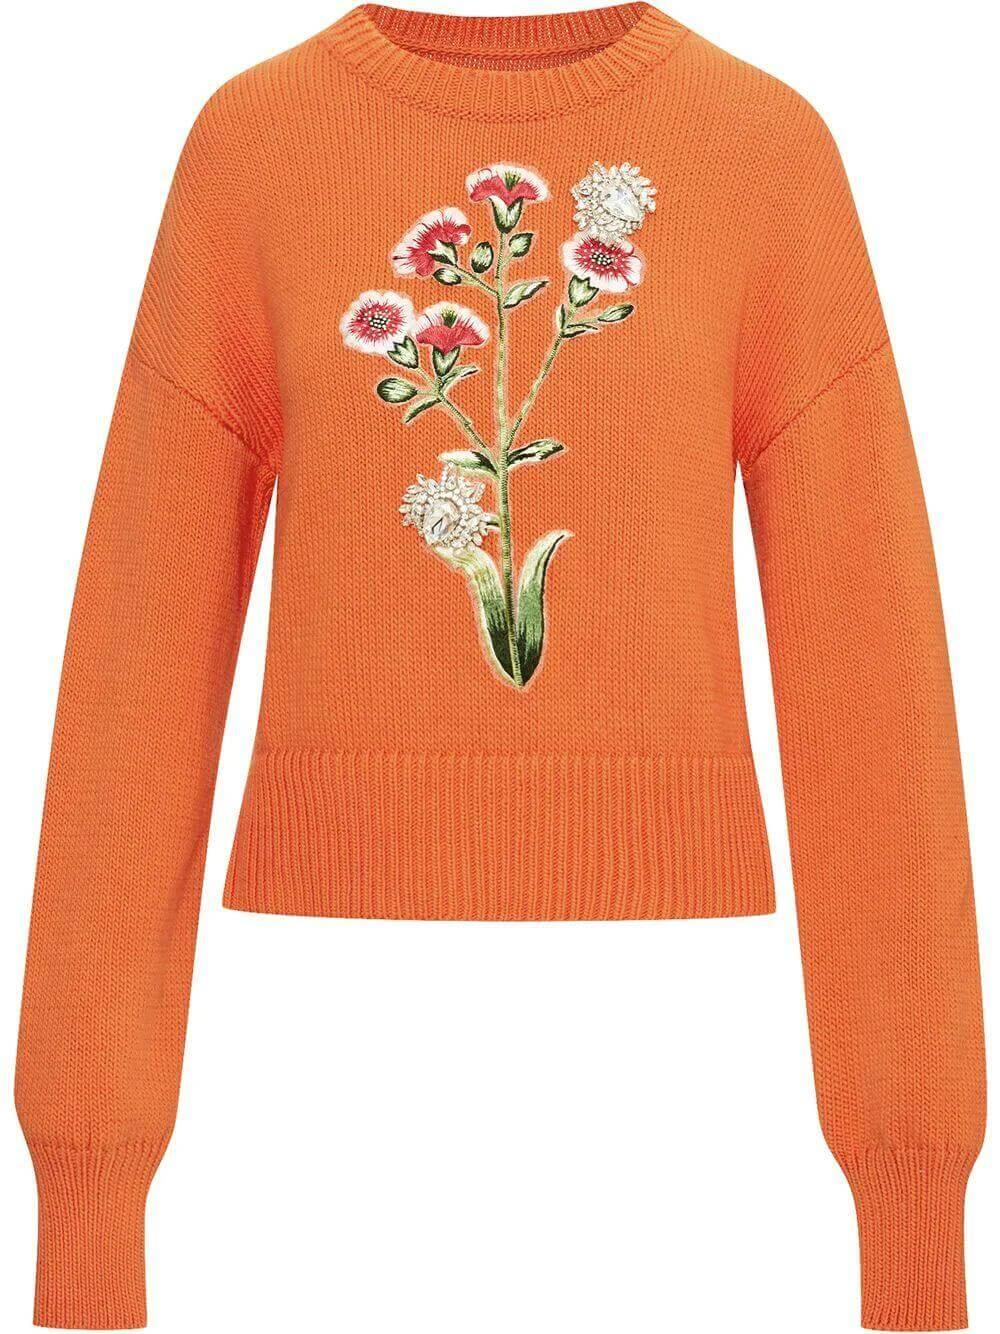 Floral Embroidered Sweater Item # 21PE167MSK